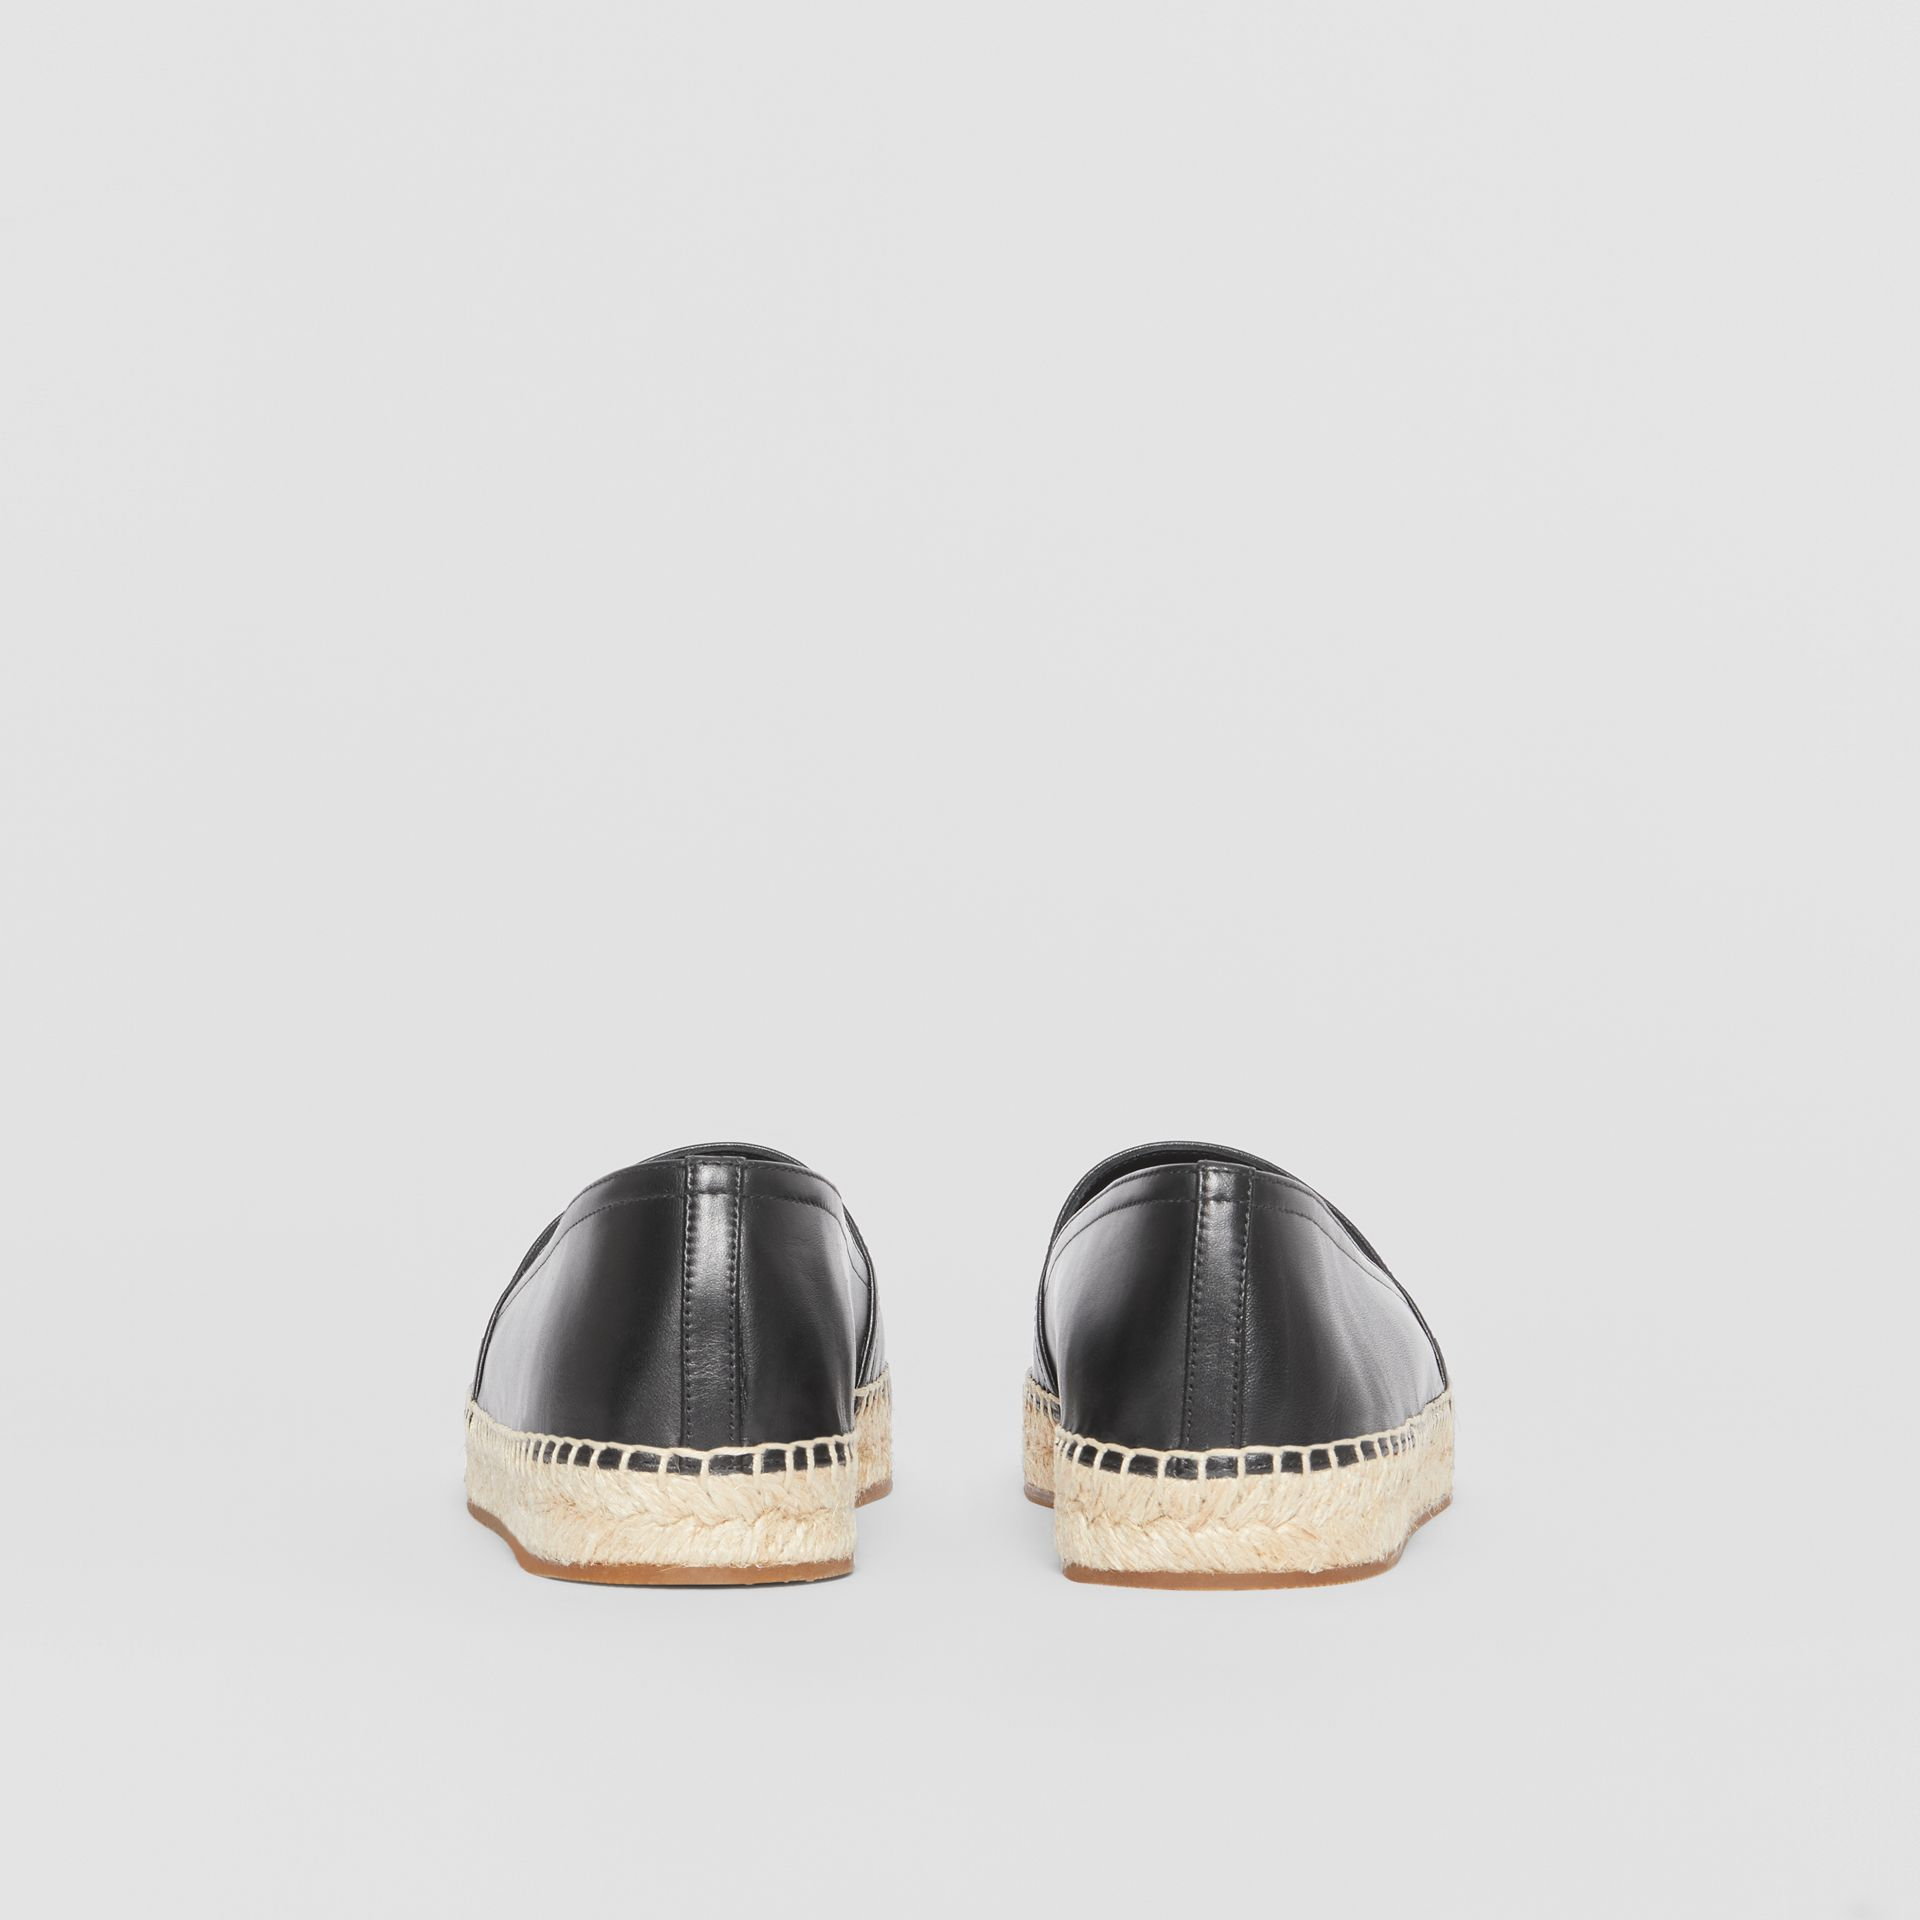 Monogram Motif Leather Espadrilles in Black - Women | Burberry - gallery image 4